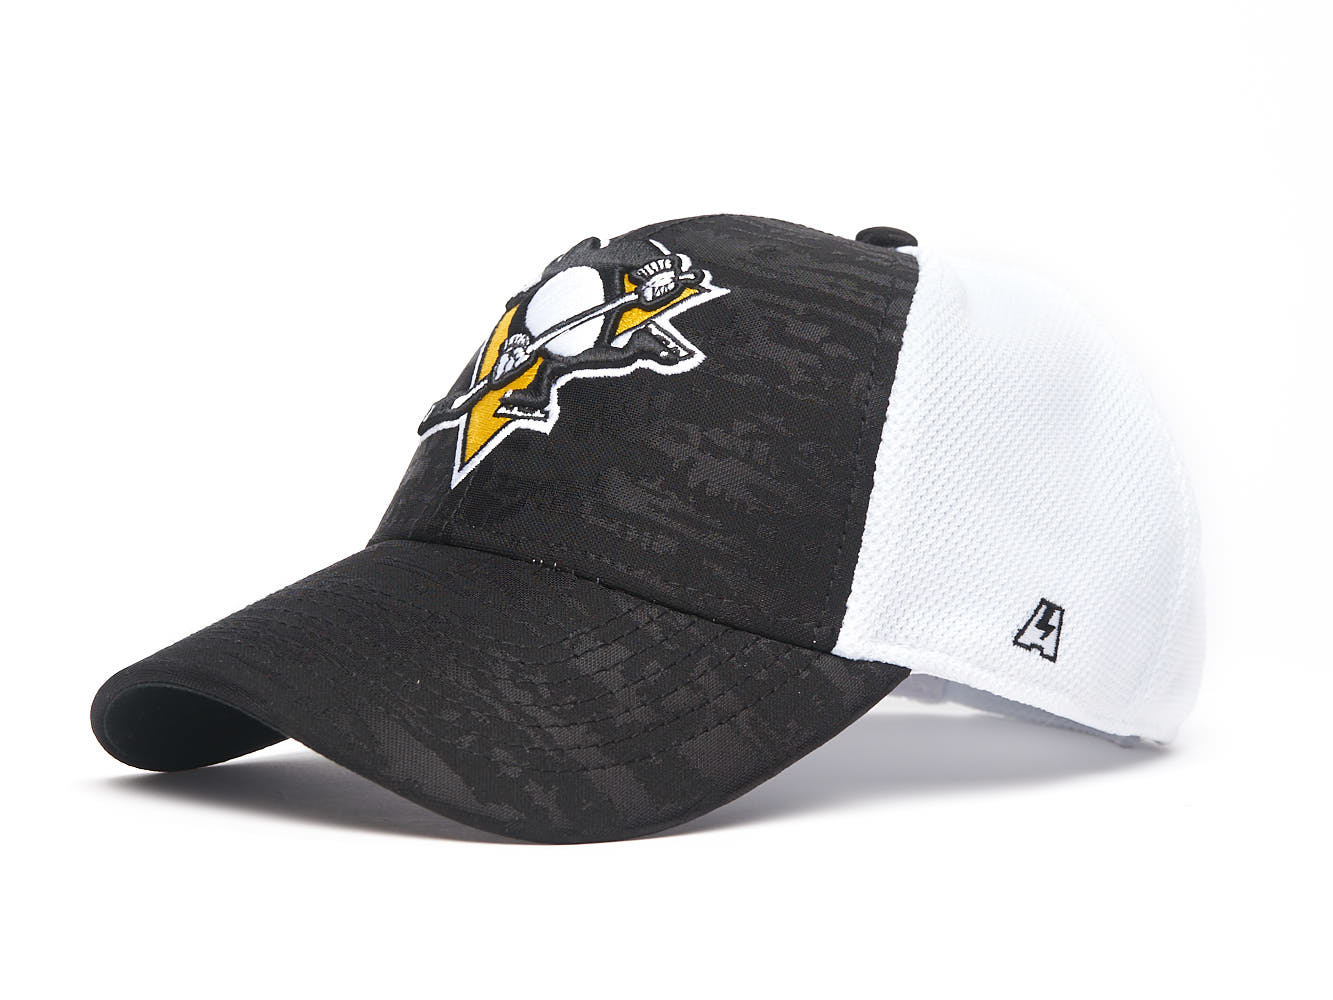 Бейсболка NHL Pittsburgh Penguins (размер M)